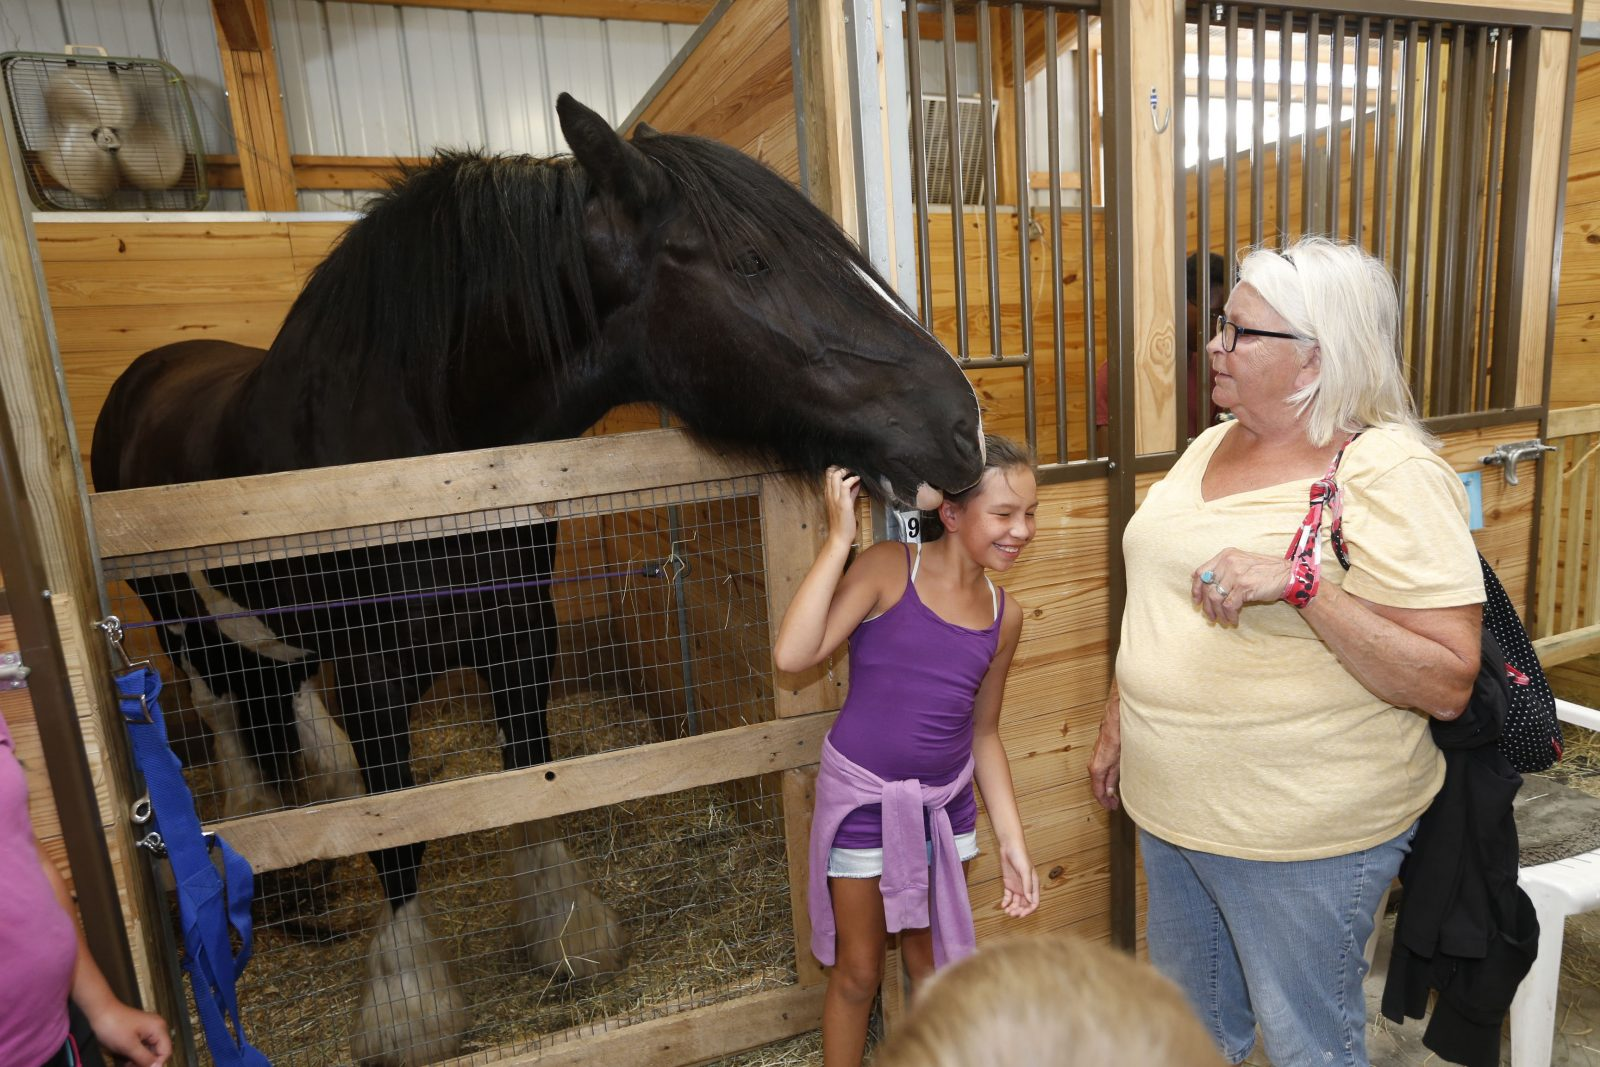 The Horse Experience from the 2016 Erie County Fair. (Robert Kirkham/Buffalo News)